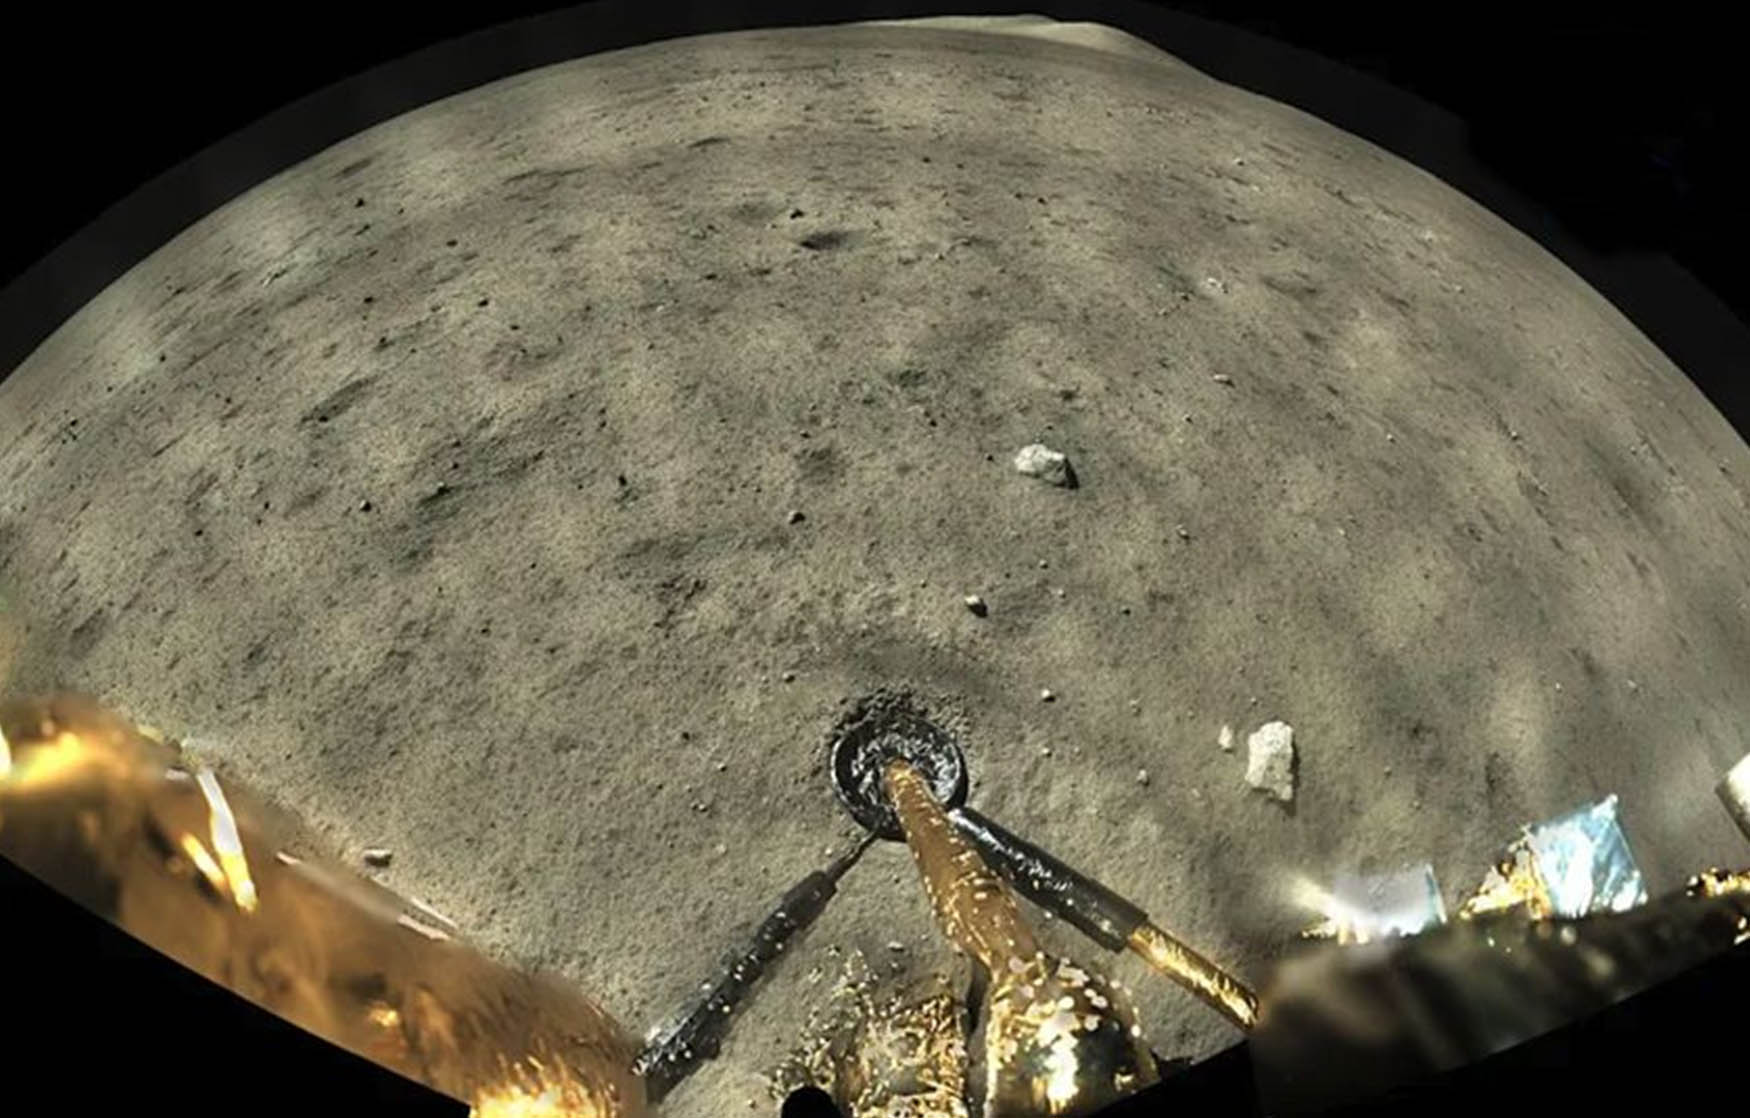 China's lunar lander collected samples and snapped color photos